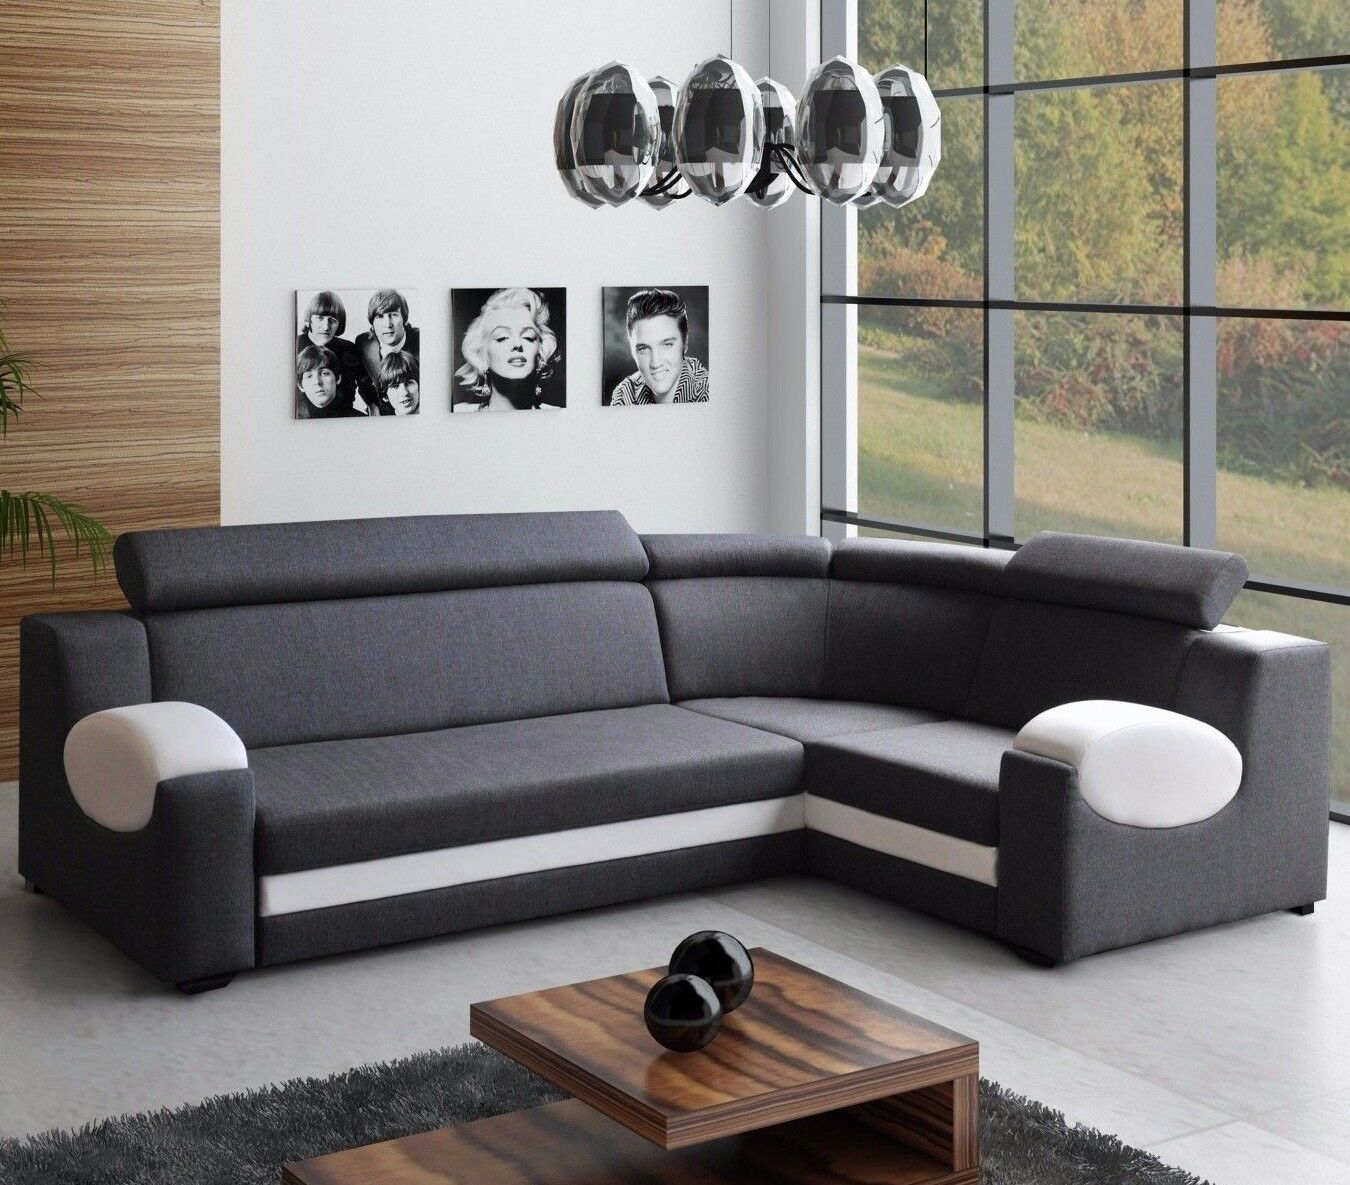 ecksofa mit schlaffunktion neu inspirierendes design f r wohnm bel. Black Bedroom Furniture Sets. Home Design Ideas